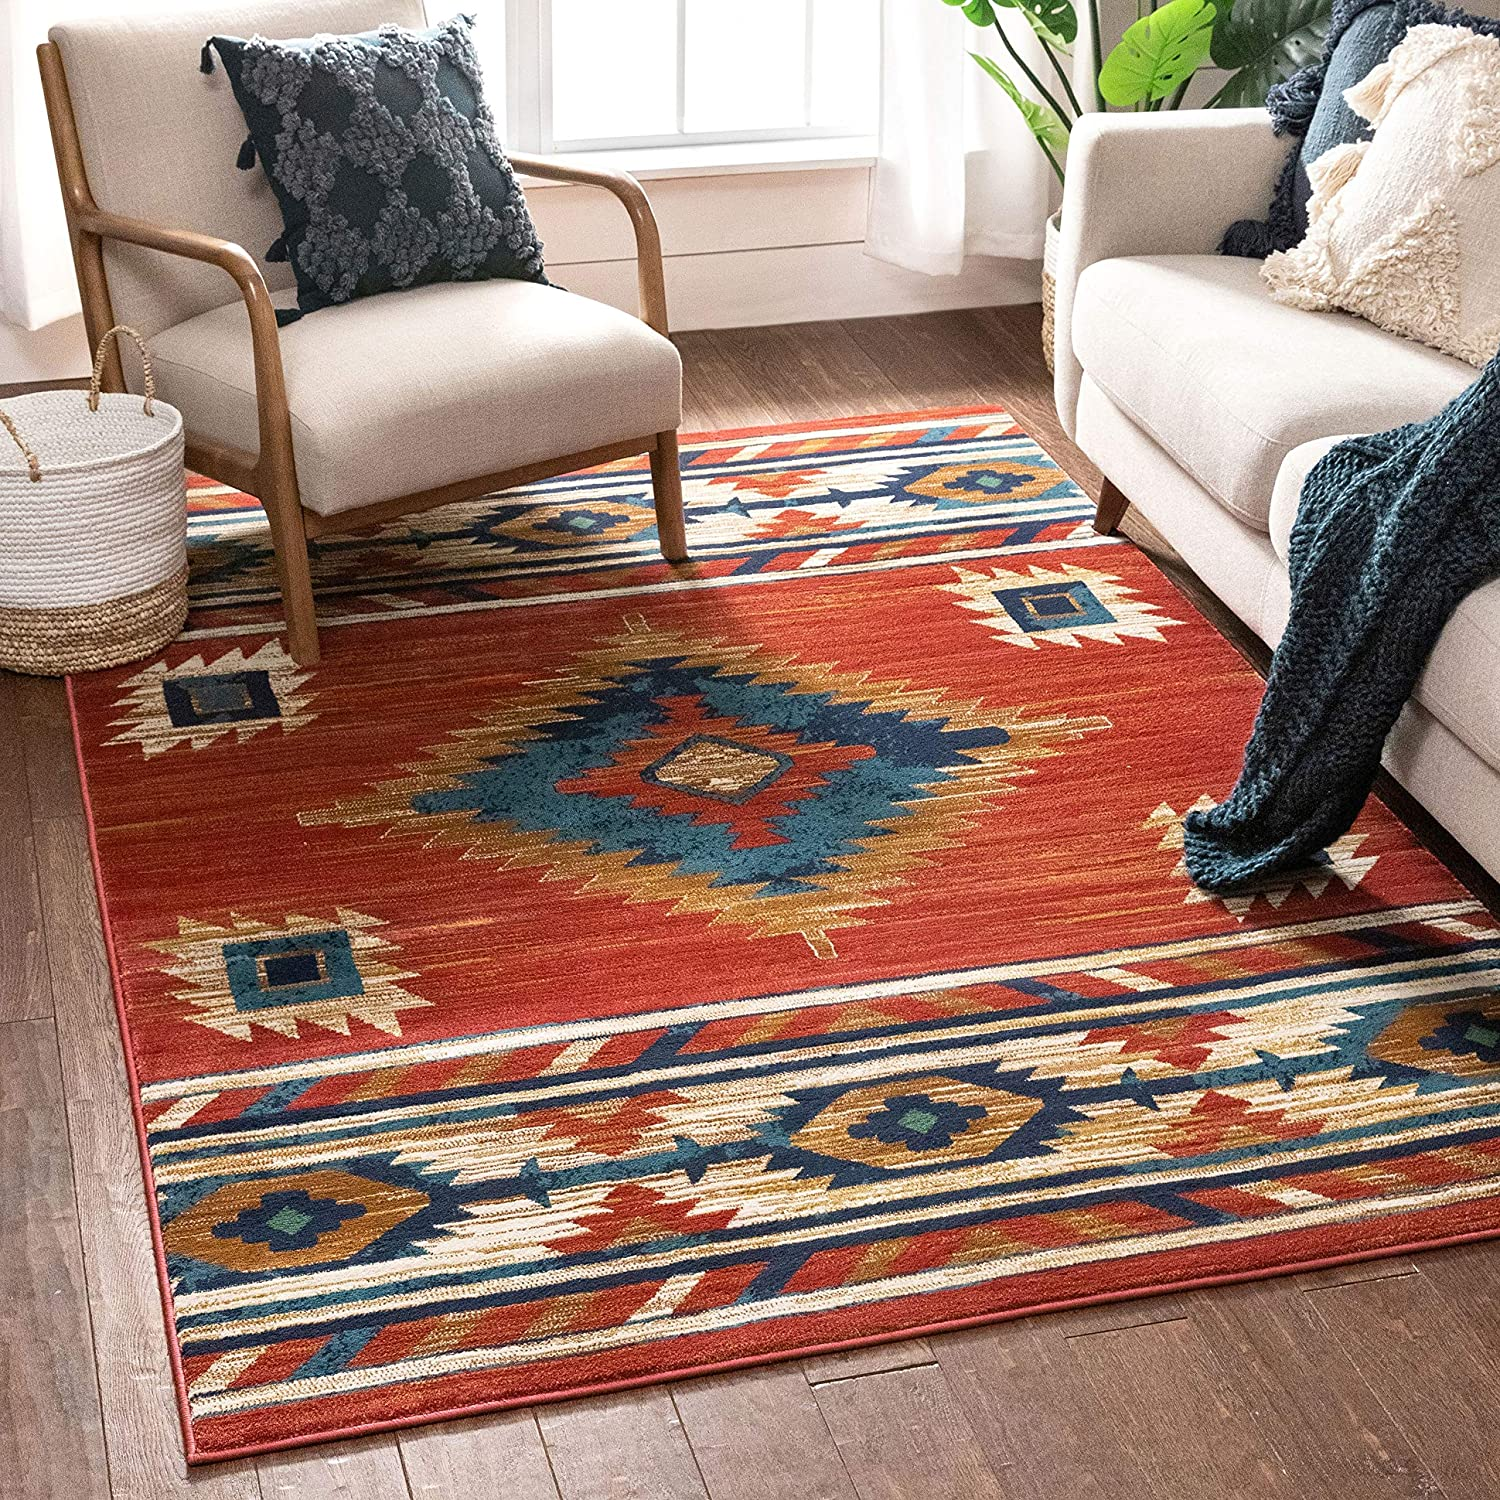 Well Woven Lizette Red Traditional Medallion Area Rug 4x6 3 11 X 5 3 Amazon Ca Home Kitchen